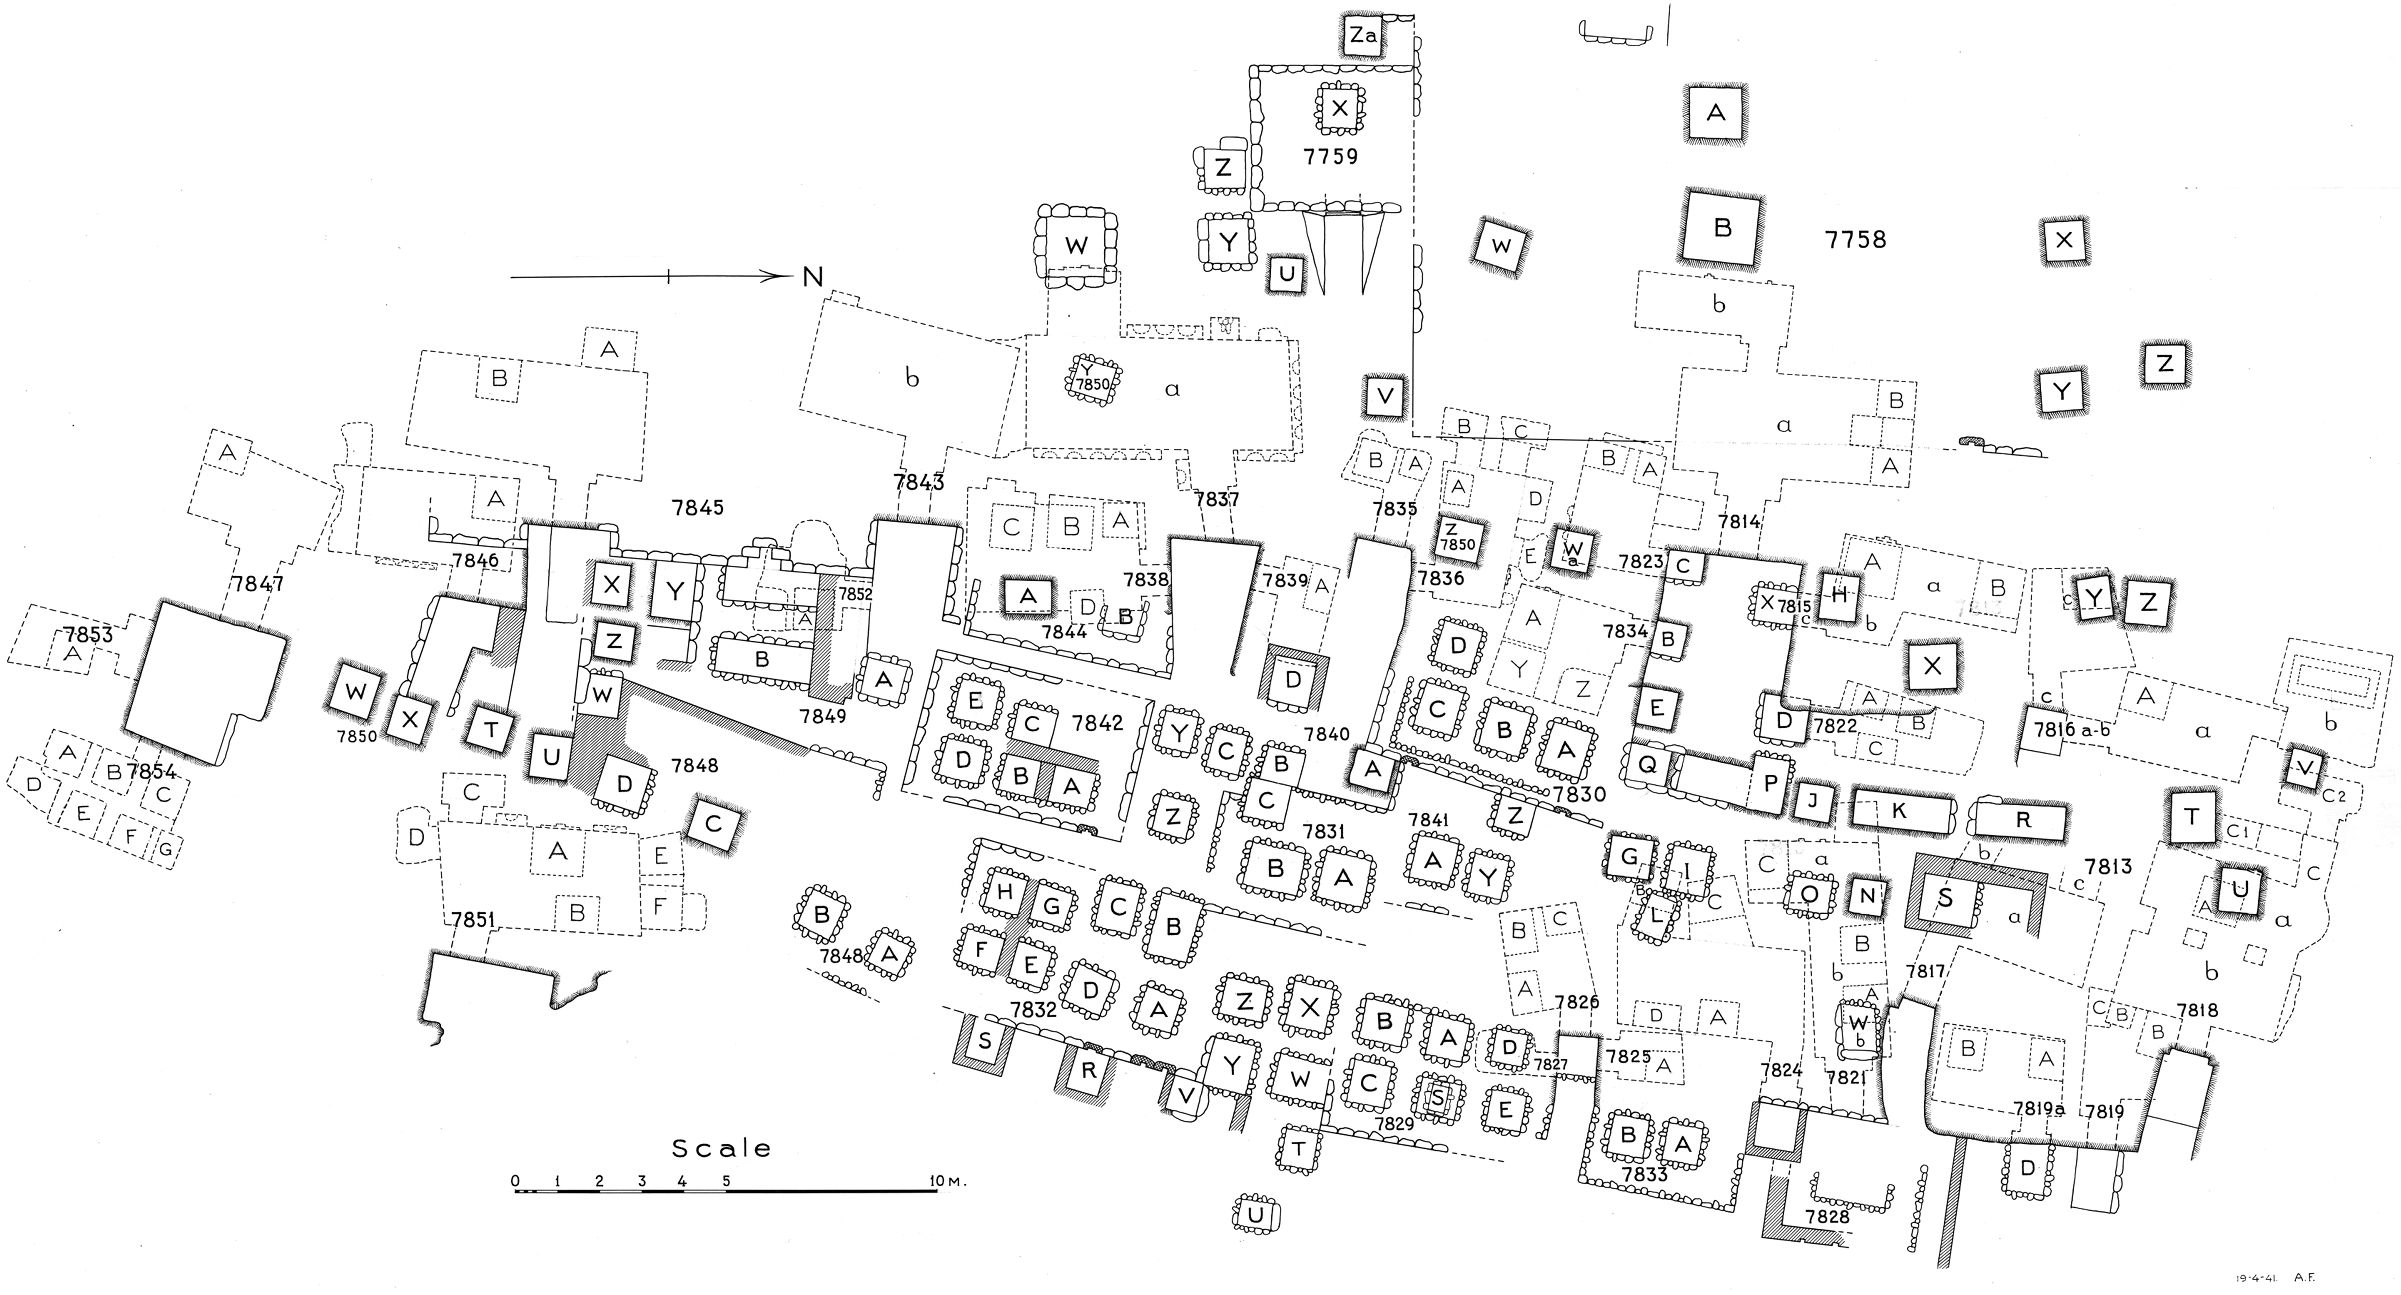 Maps and plans: Plan of cemetery G 7000: G 7800s (2 of 2)